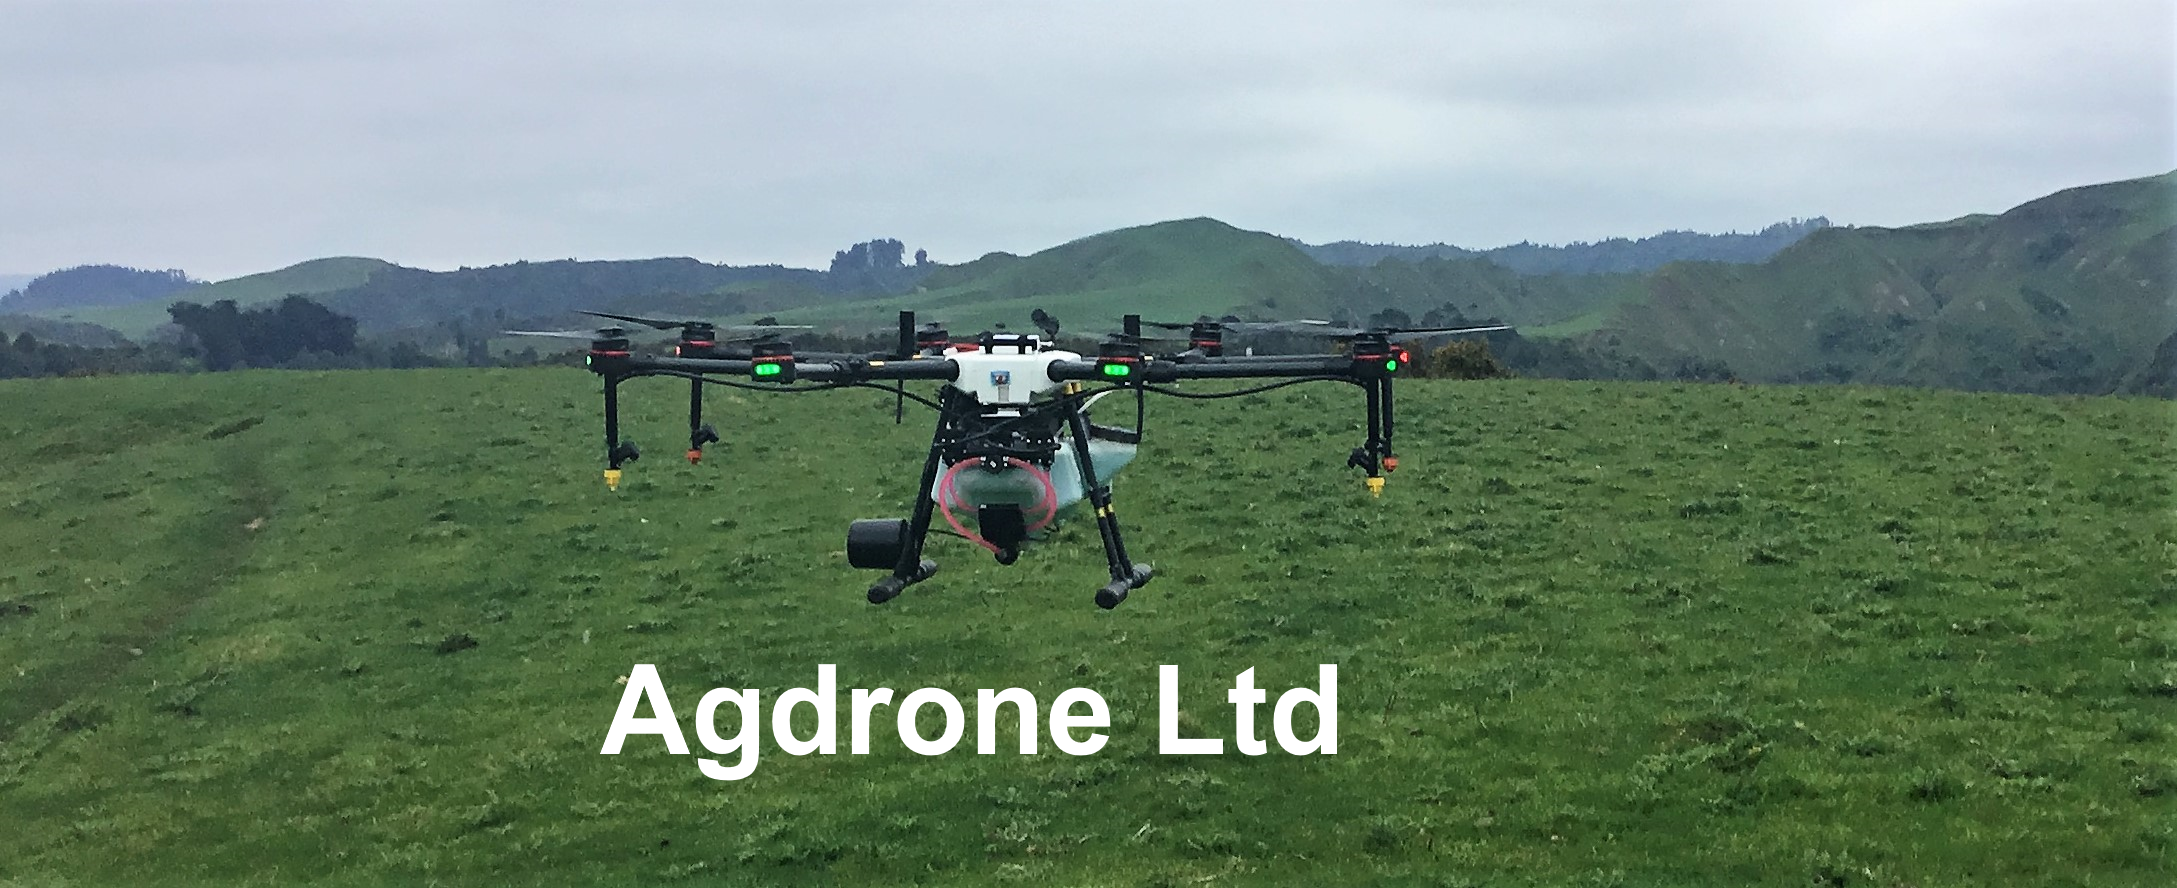 Agricultural Drone Operators